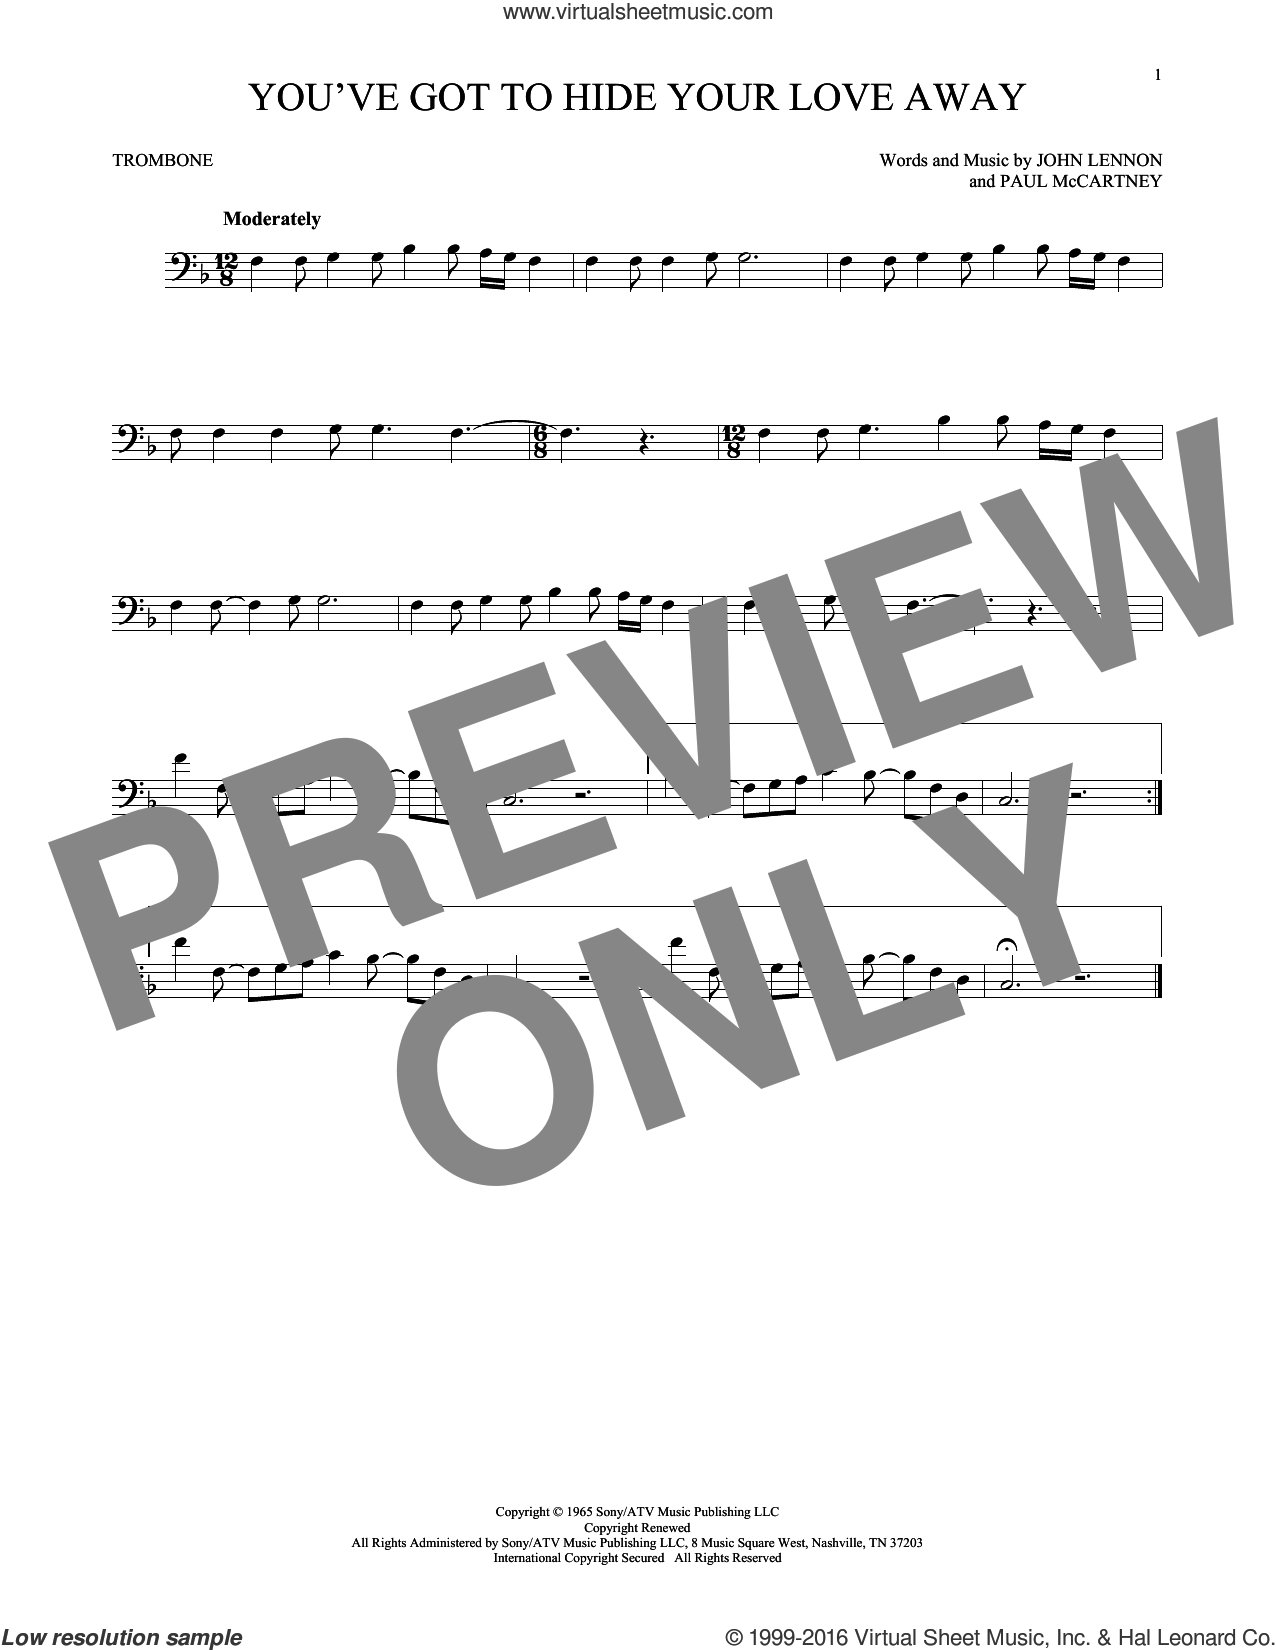 You've Got To Hide Your Love Away sheet music for trombone solo by The Beatles, John Lennon and Paul McCartney, intermediate. Score Image Preview.